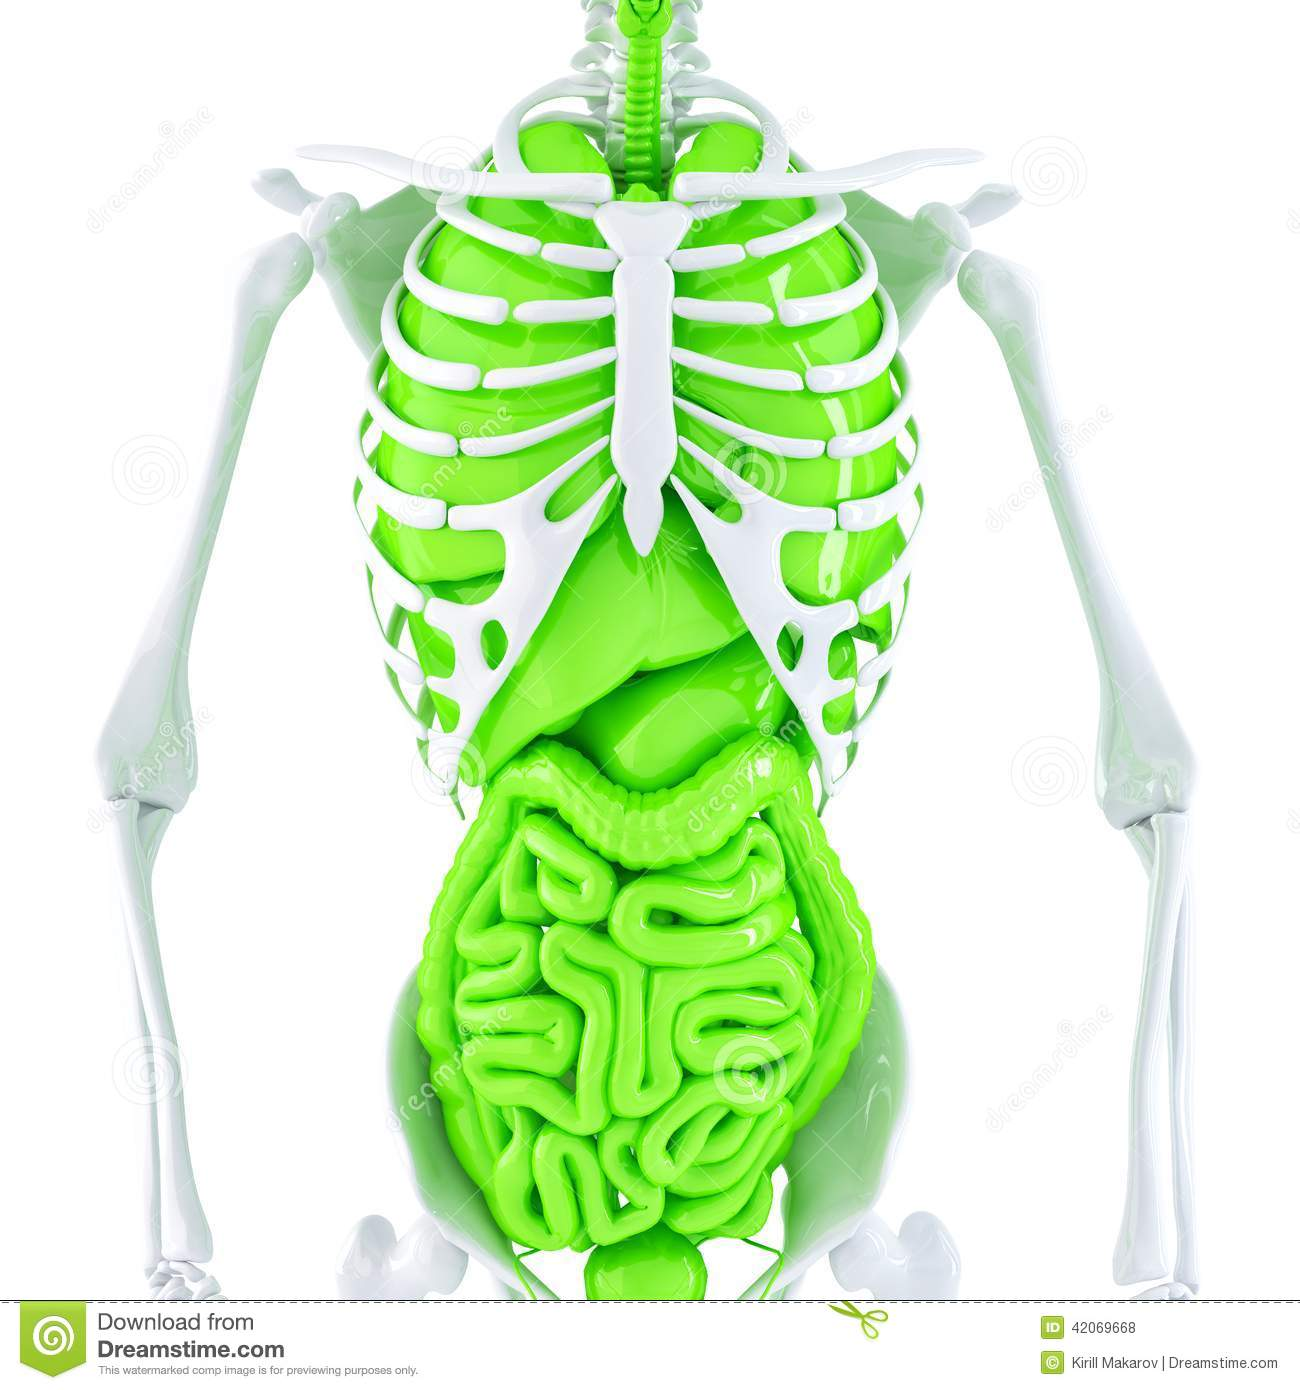 3d Illustration Of Human Skeleton And Internal Organs. Isolated ...